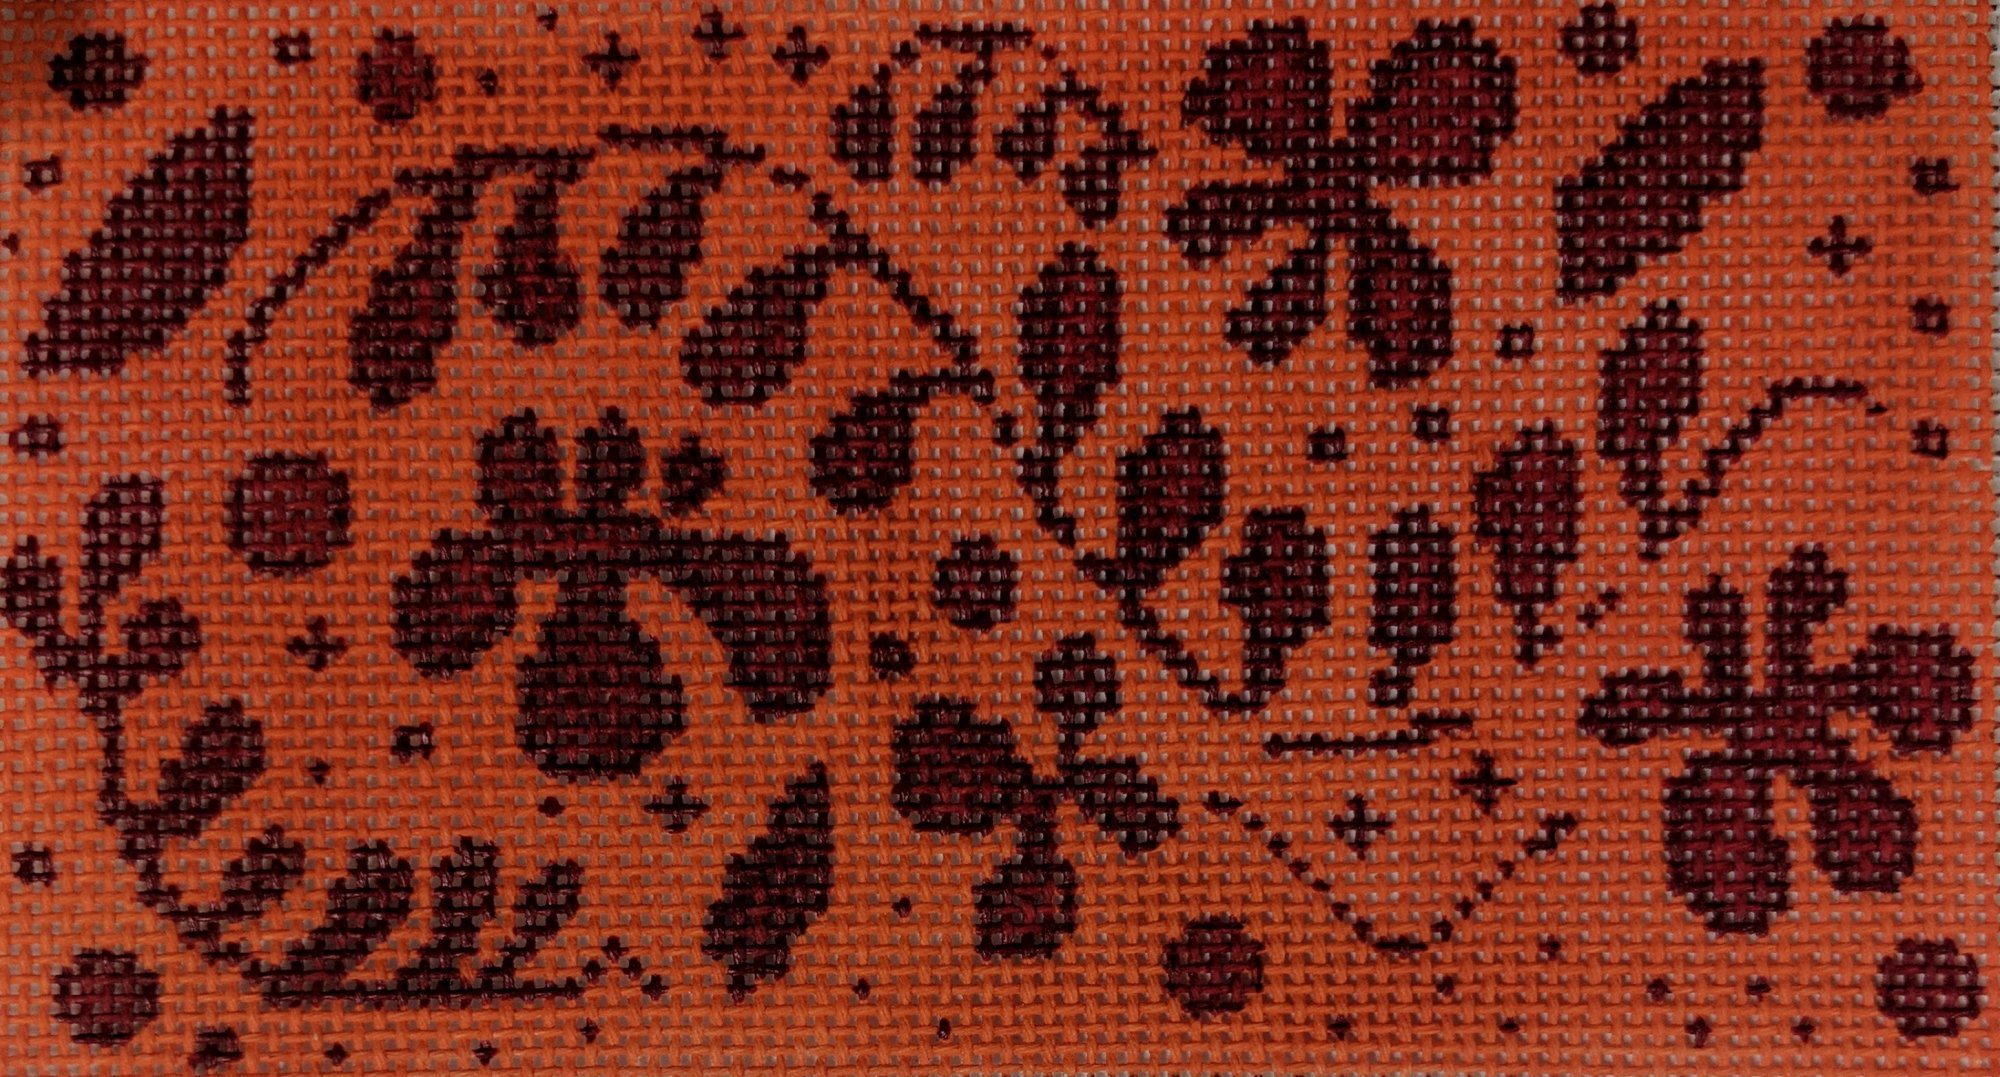 Red/Orange Floral, Fits Self Finishing CCW, 18 ct., 3 x 5.5